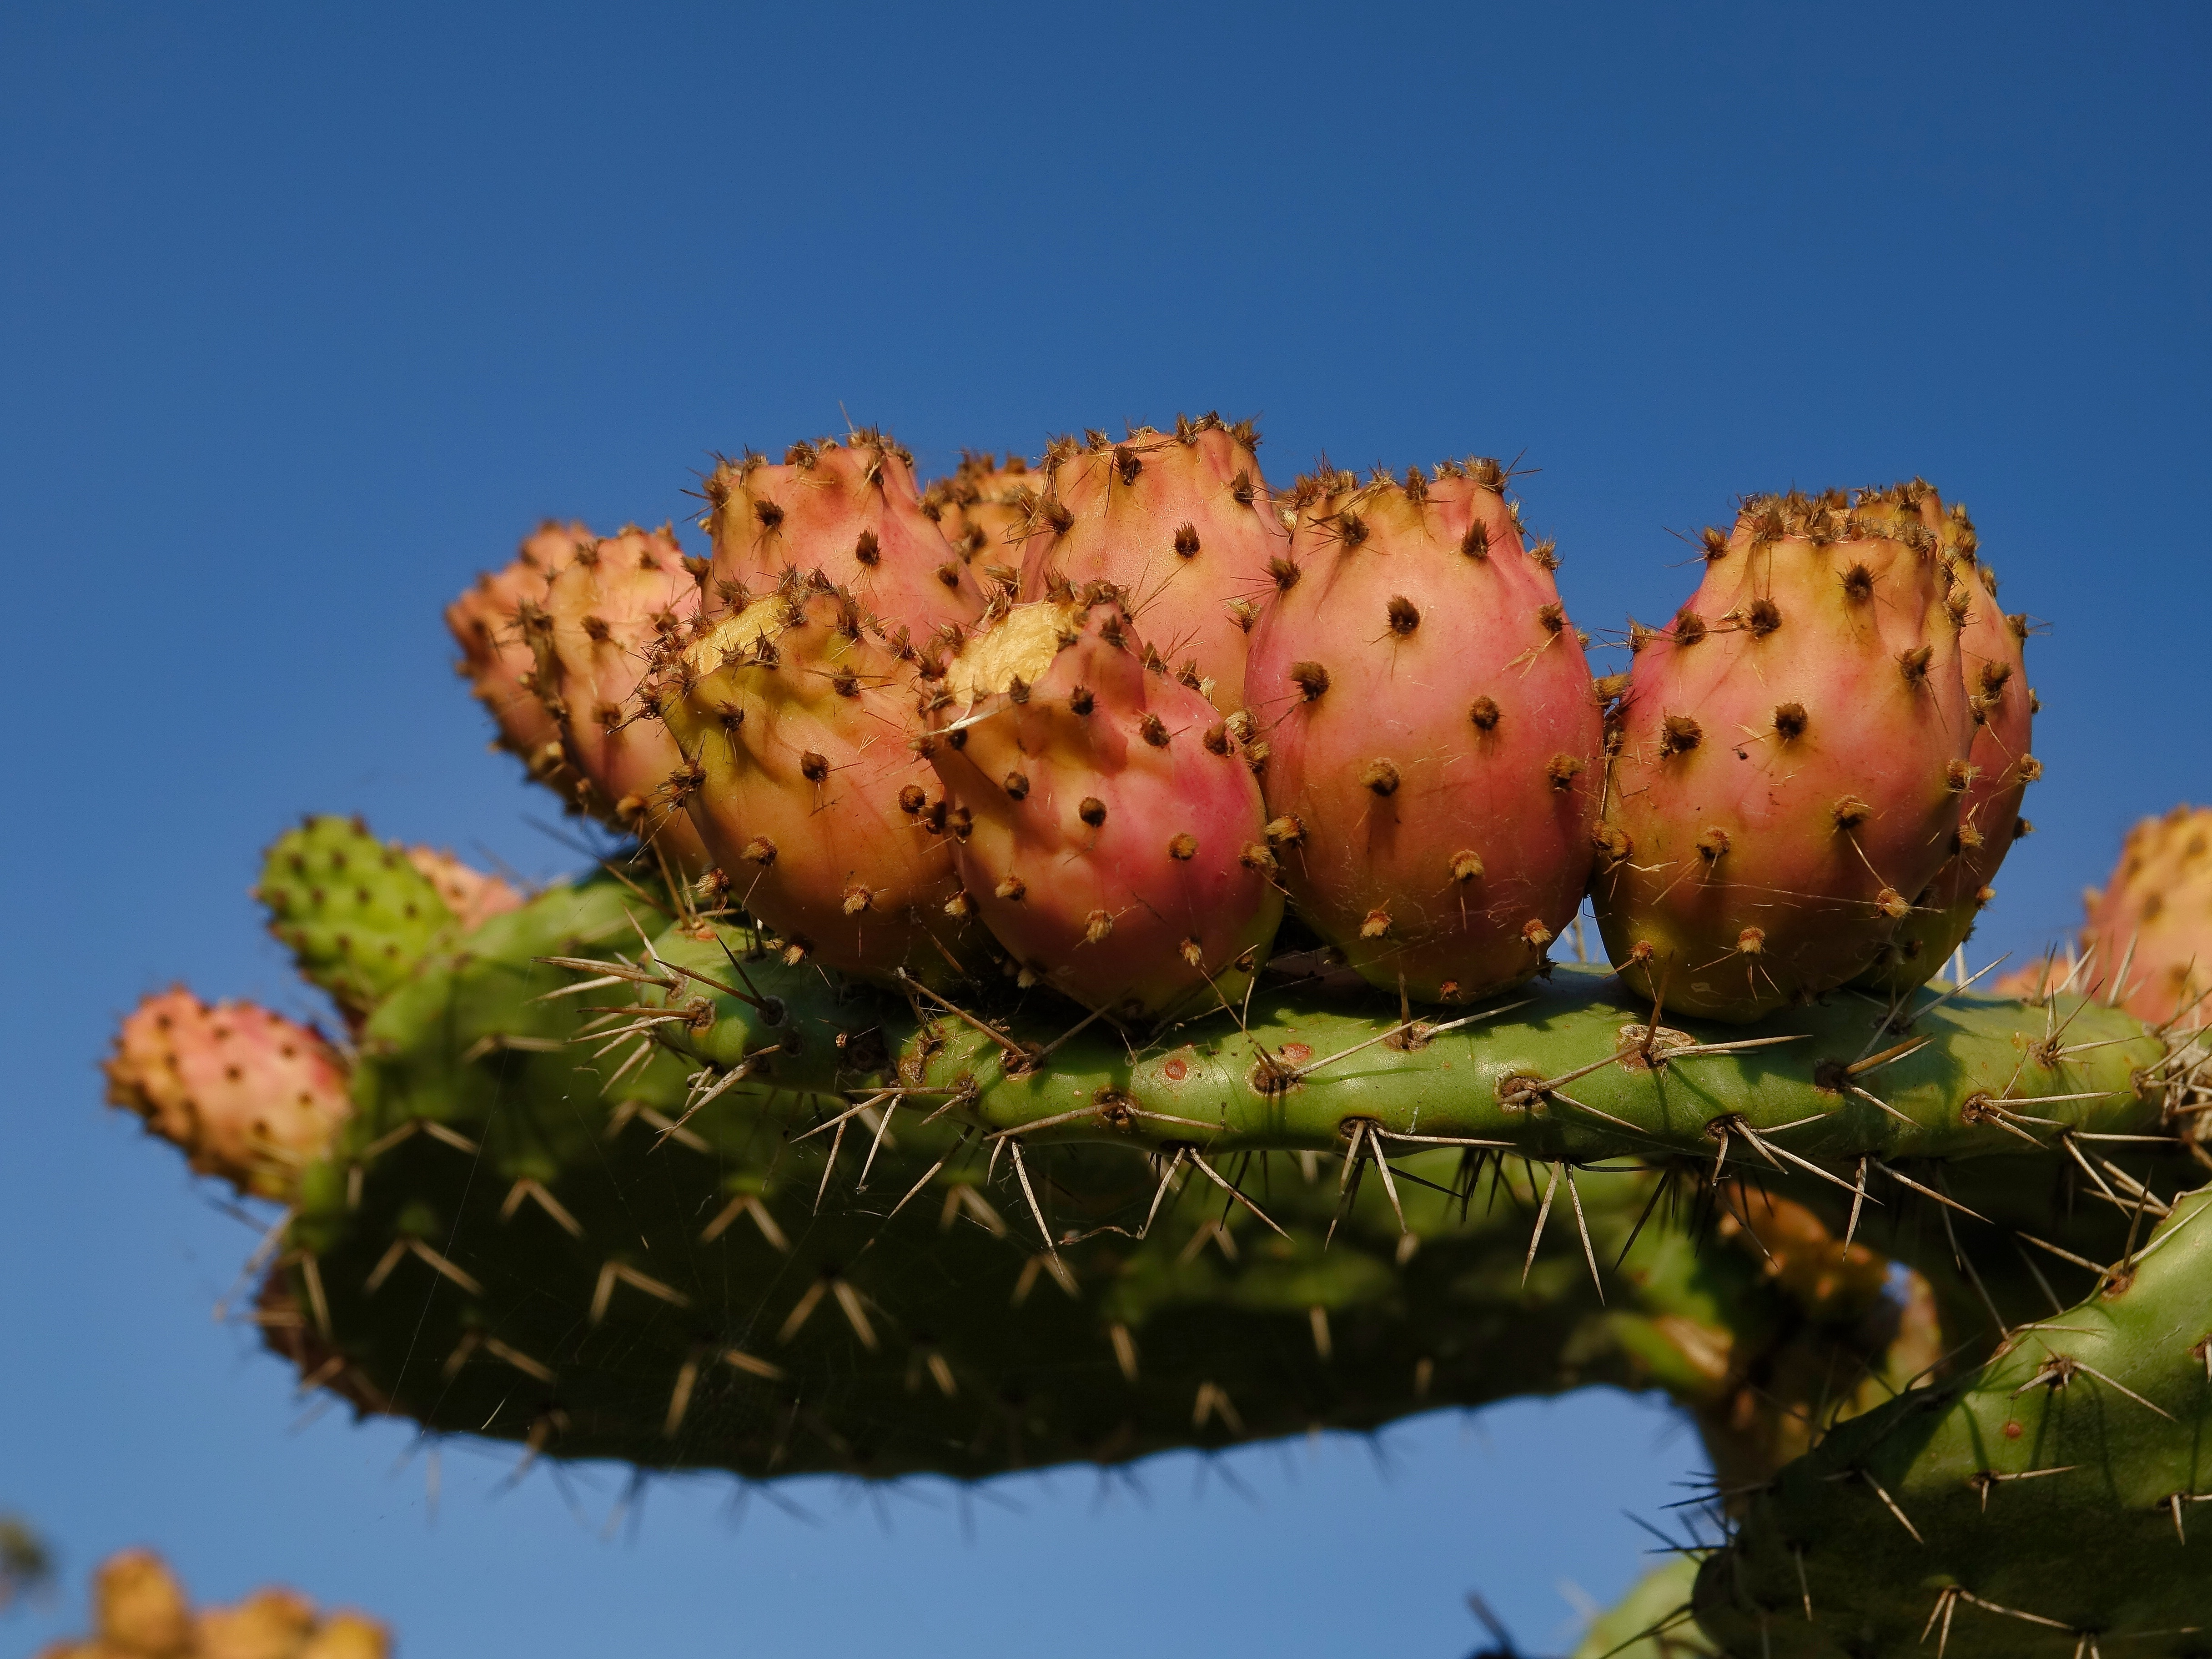 Prickly pears ripening